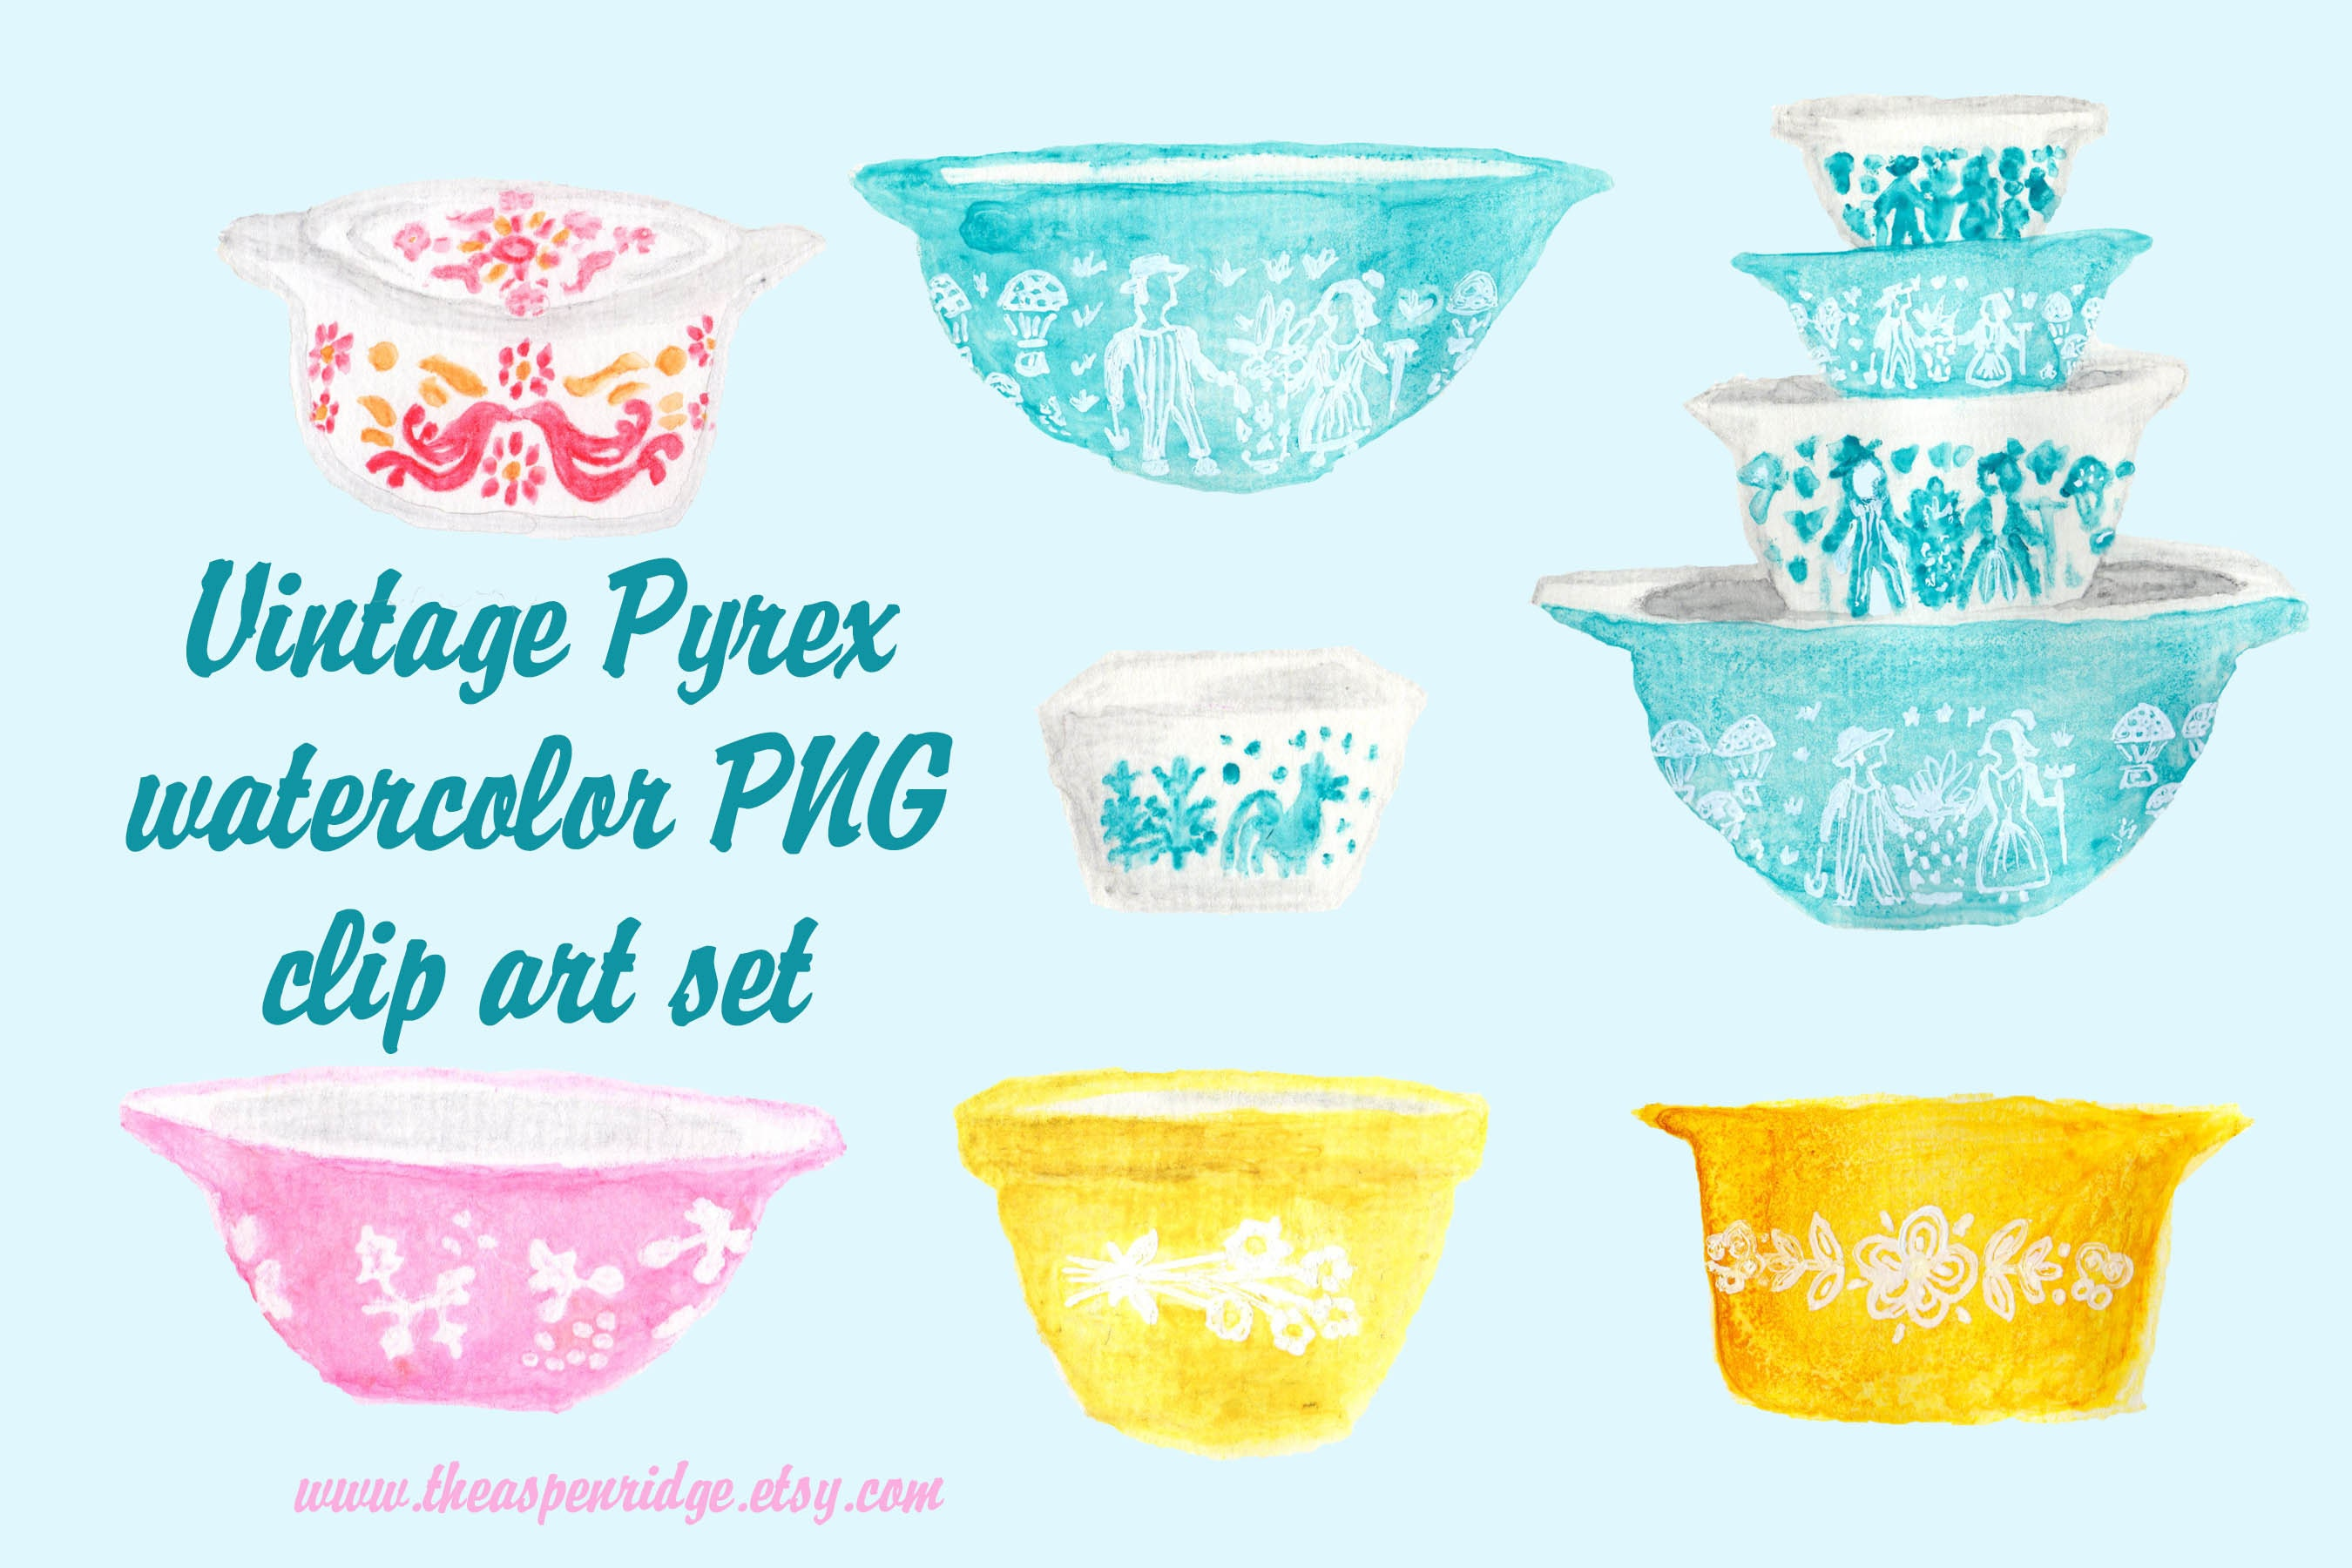 Vintage Pyrex bowl watercolor PNG clip art set of 7 files